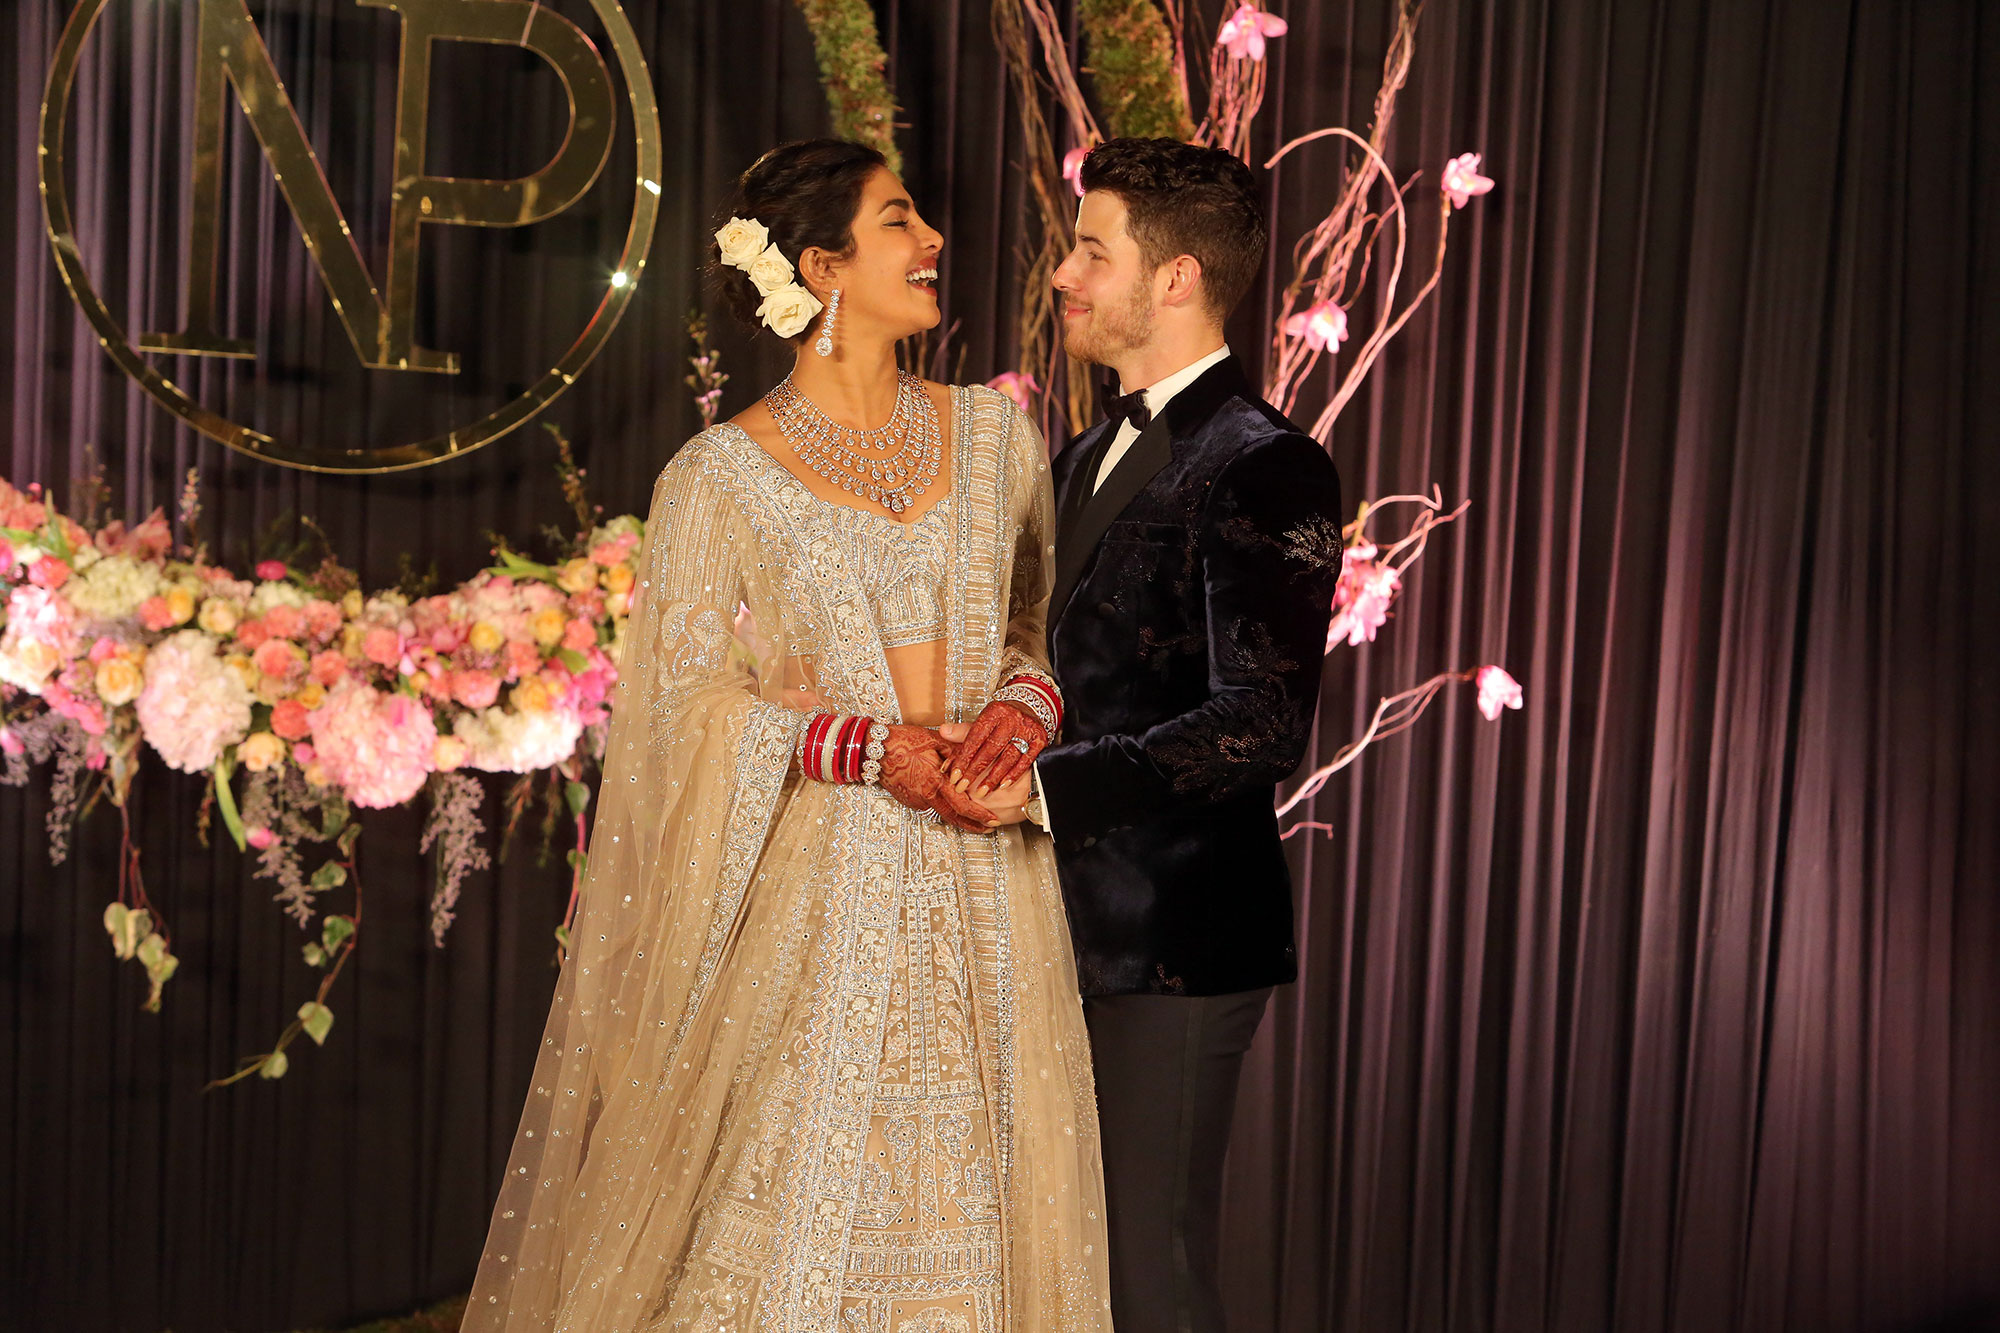 Celebrity Couples Who Got Engaged and Married in the Same Year - Engaged: July 19, 2018 Married: December 1, 2018 Status: Still married